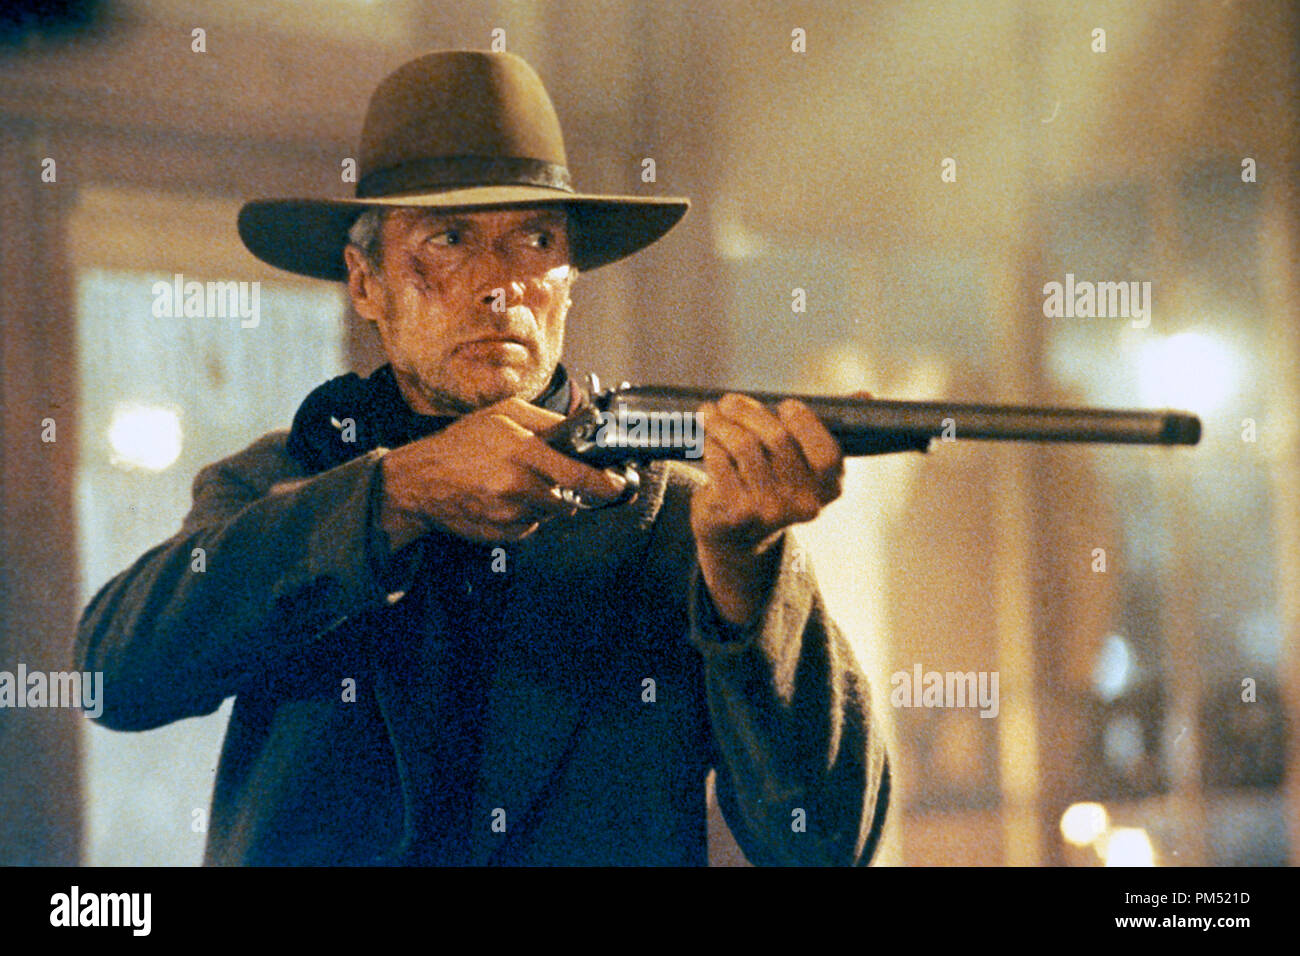 Film Still from 'Unforgiven' Clint Eastwood © 1992 Warner Brothers - Stock Image